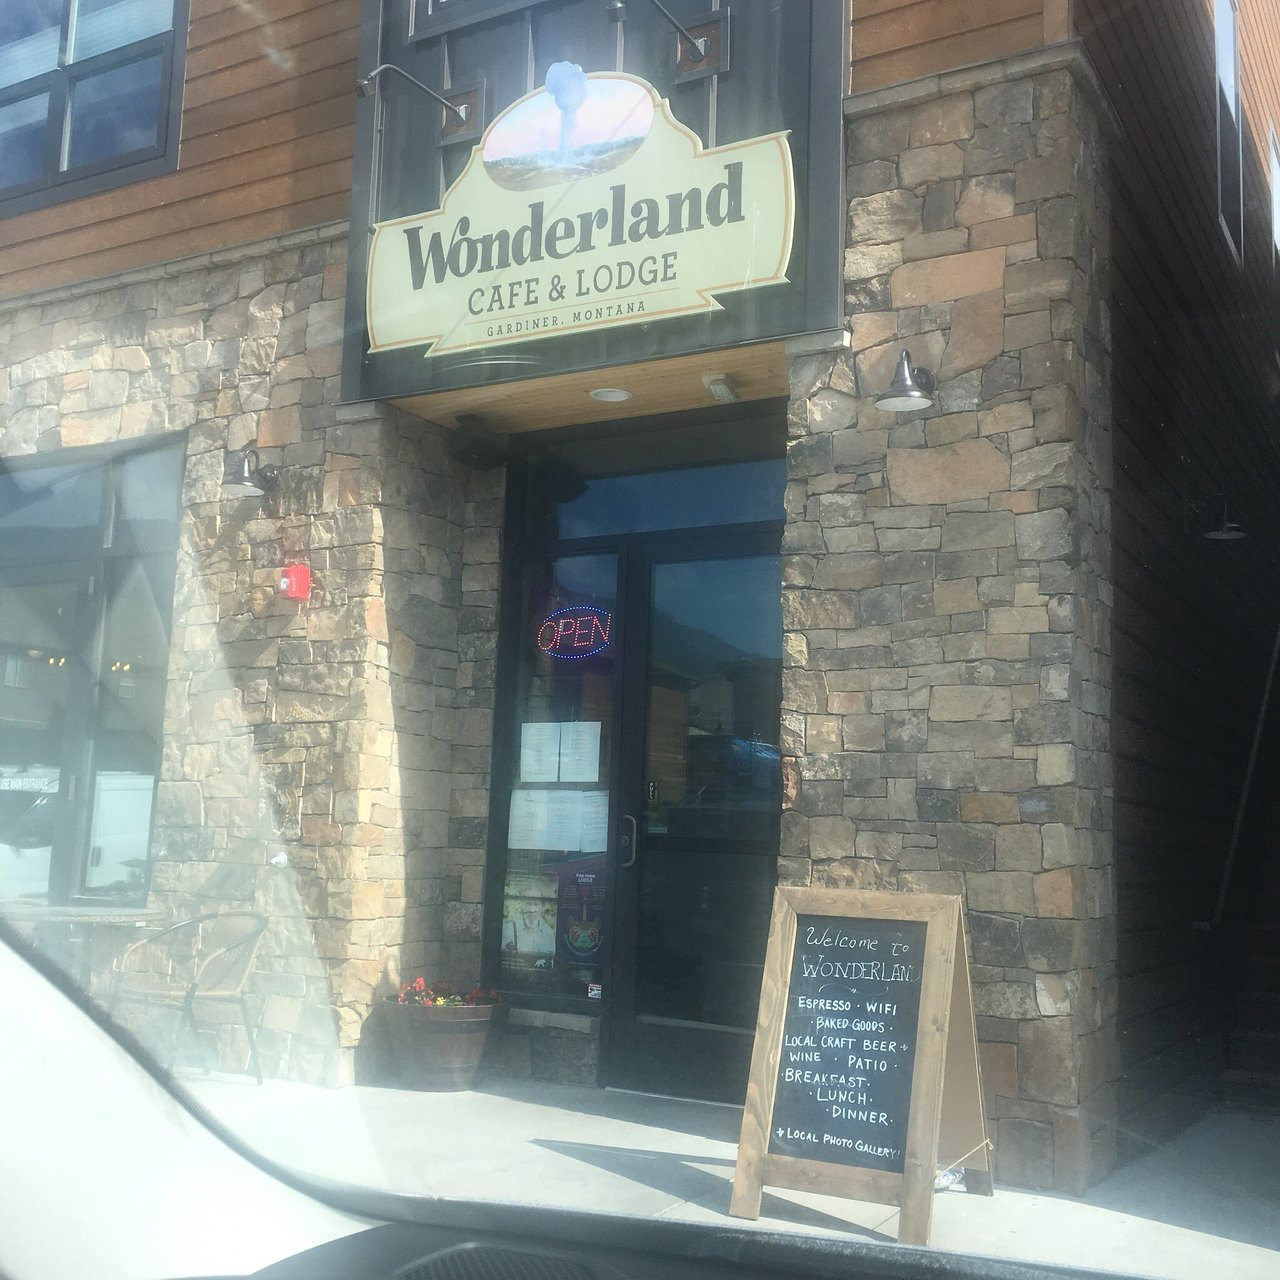 Groovy WONDERLAND CAFE AND LODGE - Updated 2019 Reviews (Gardiner, MT TO-64